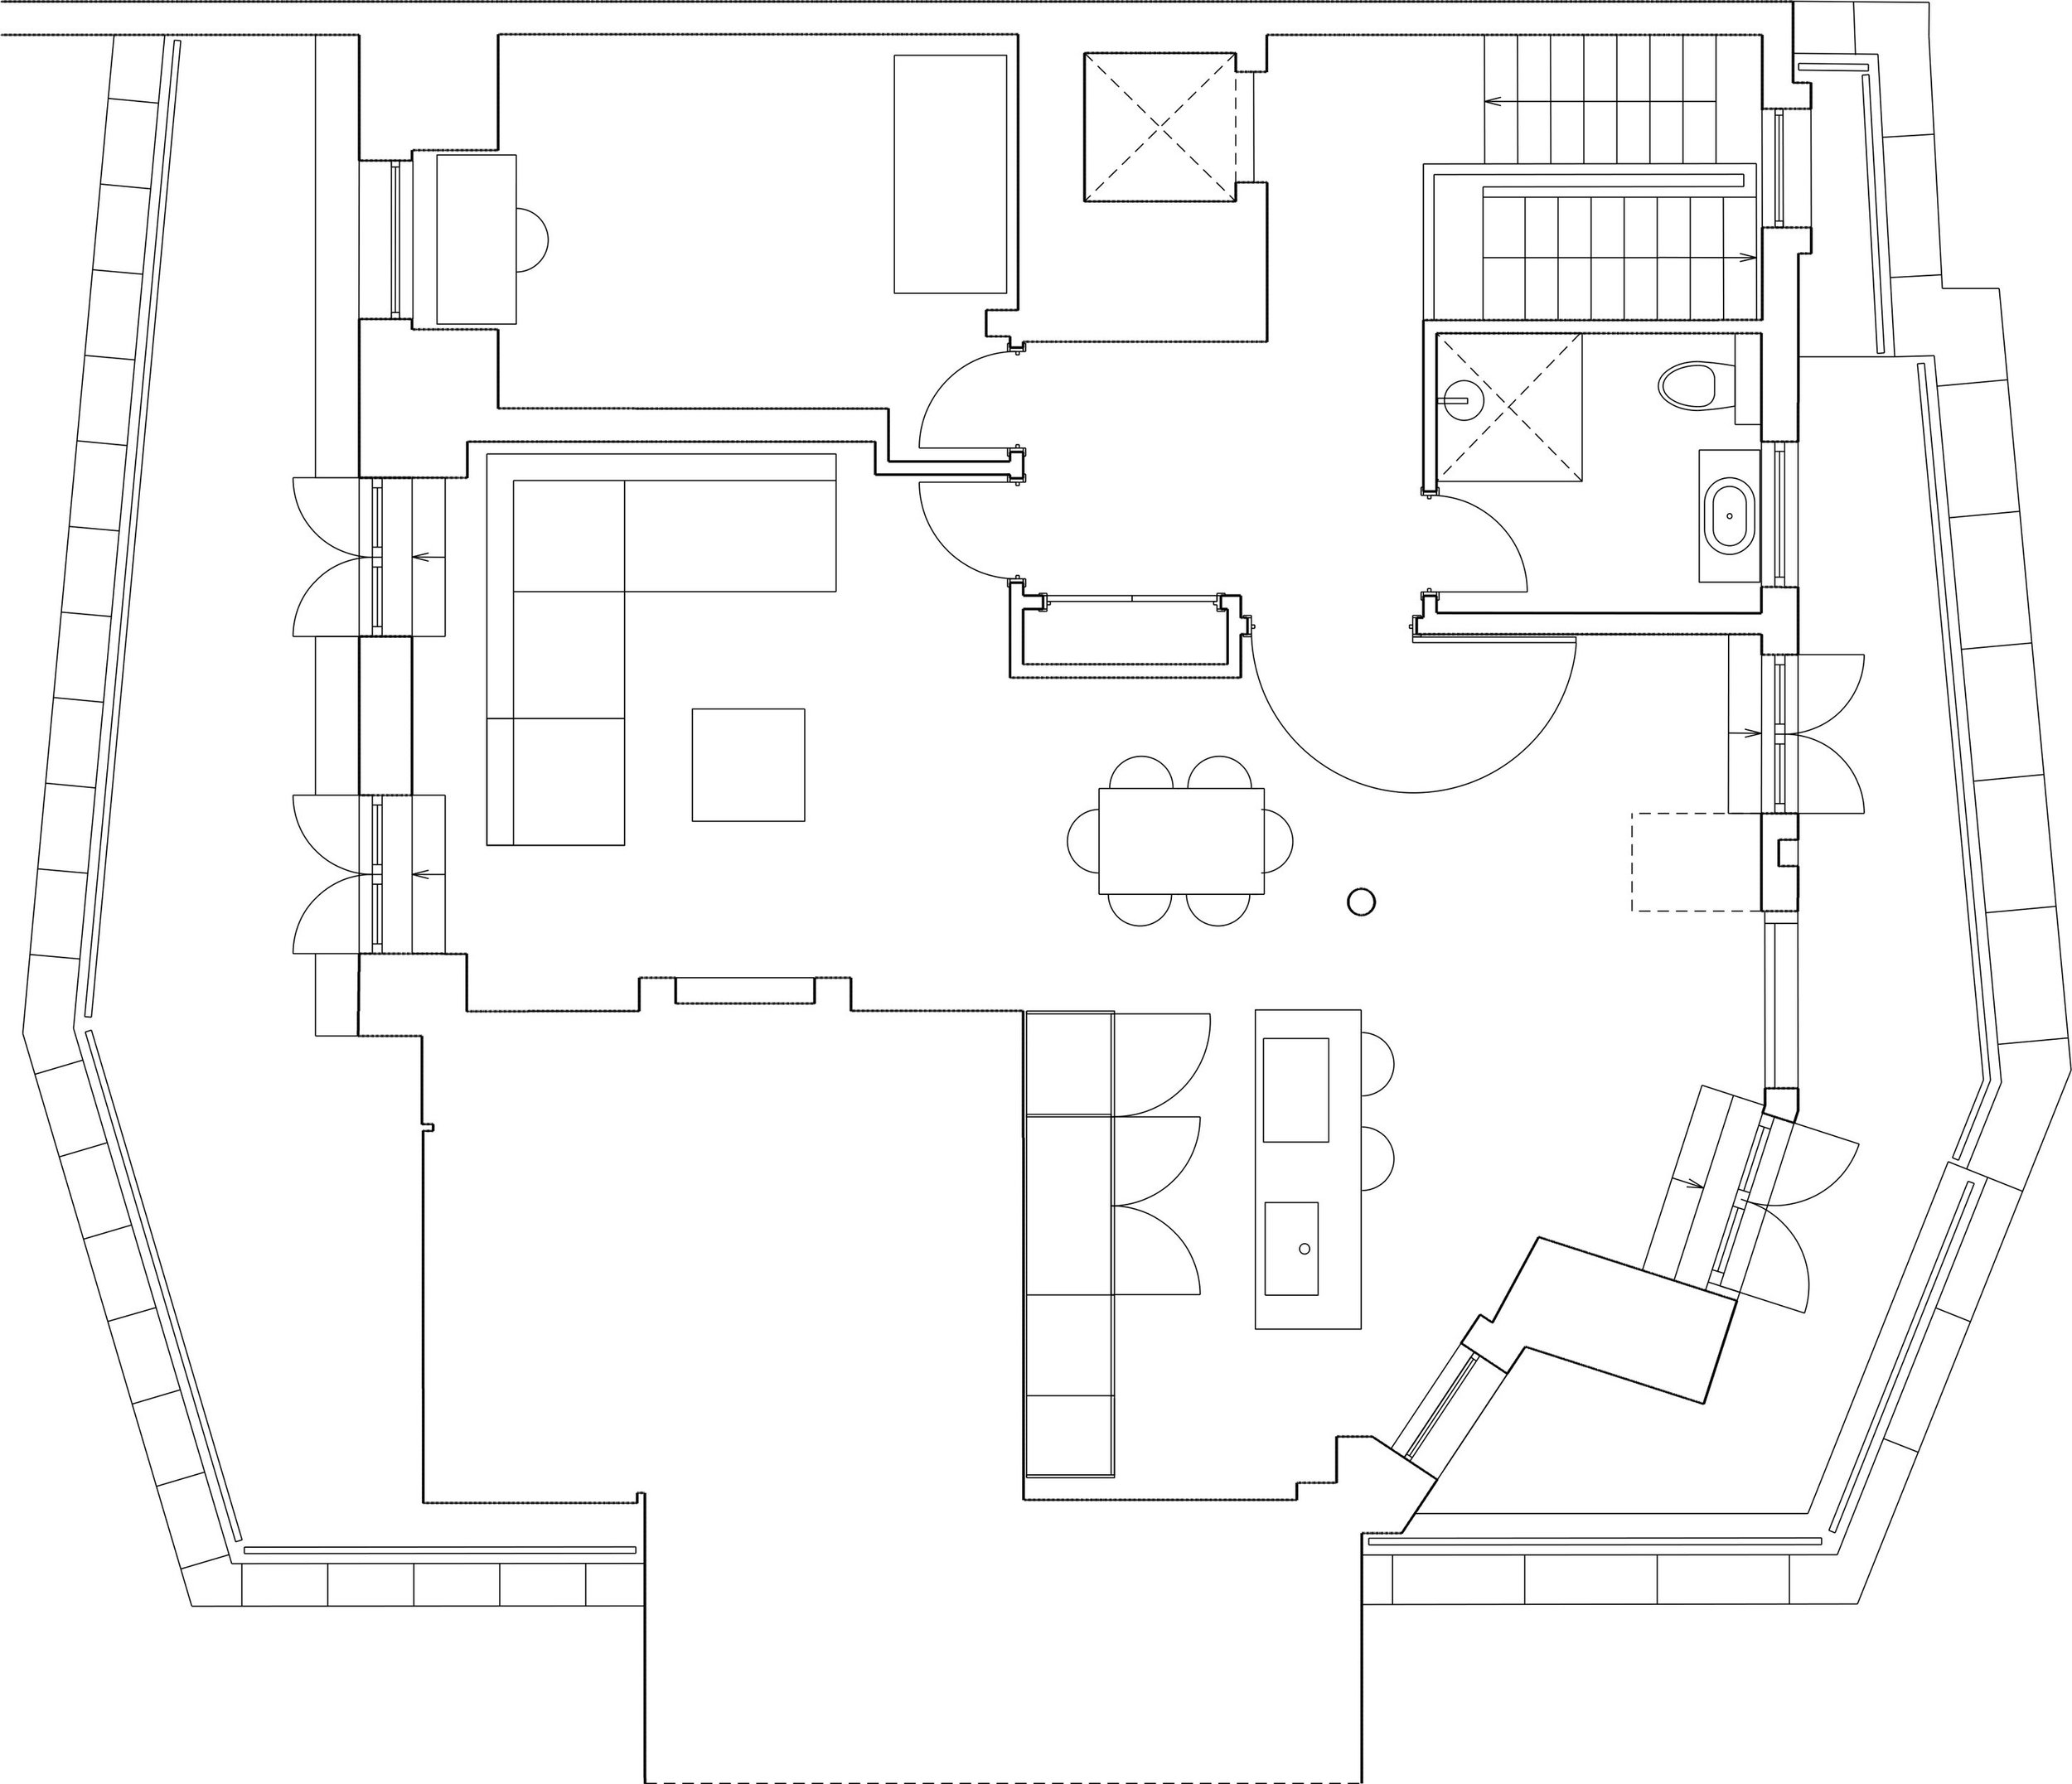 third+floor+plan+50%40a3.jpg